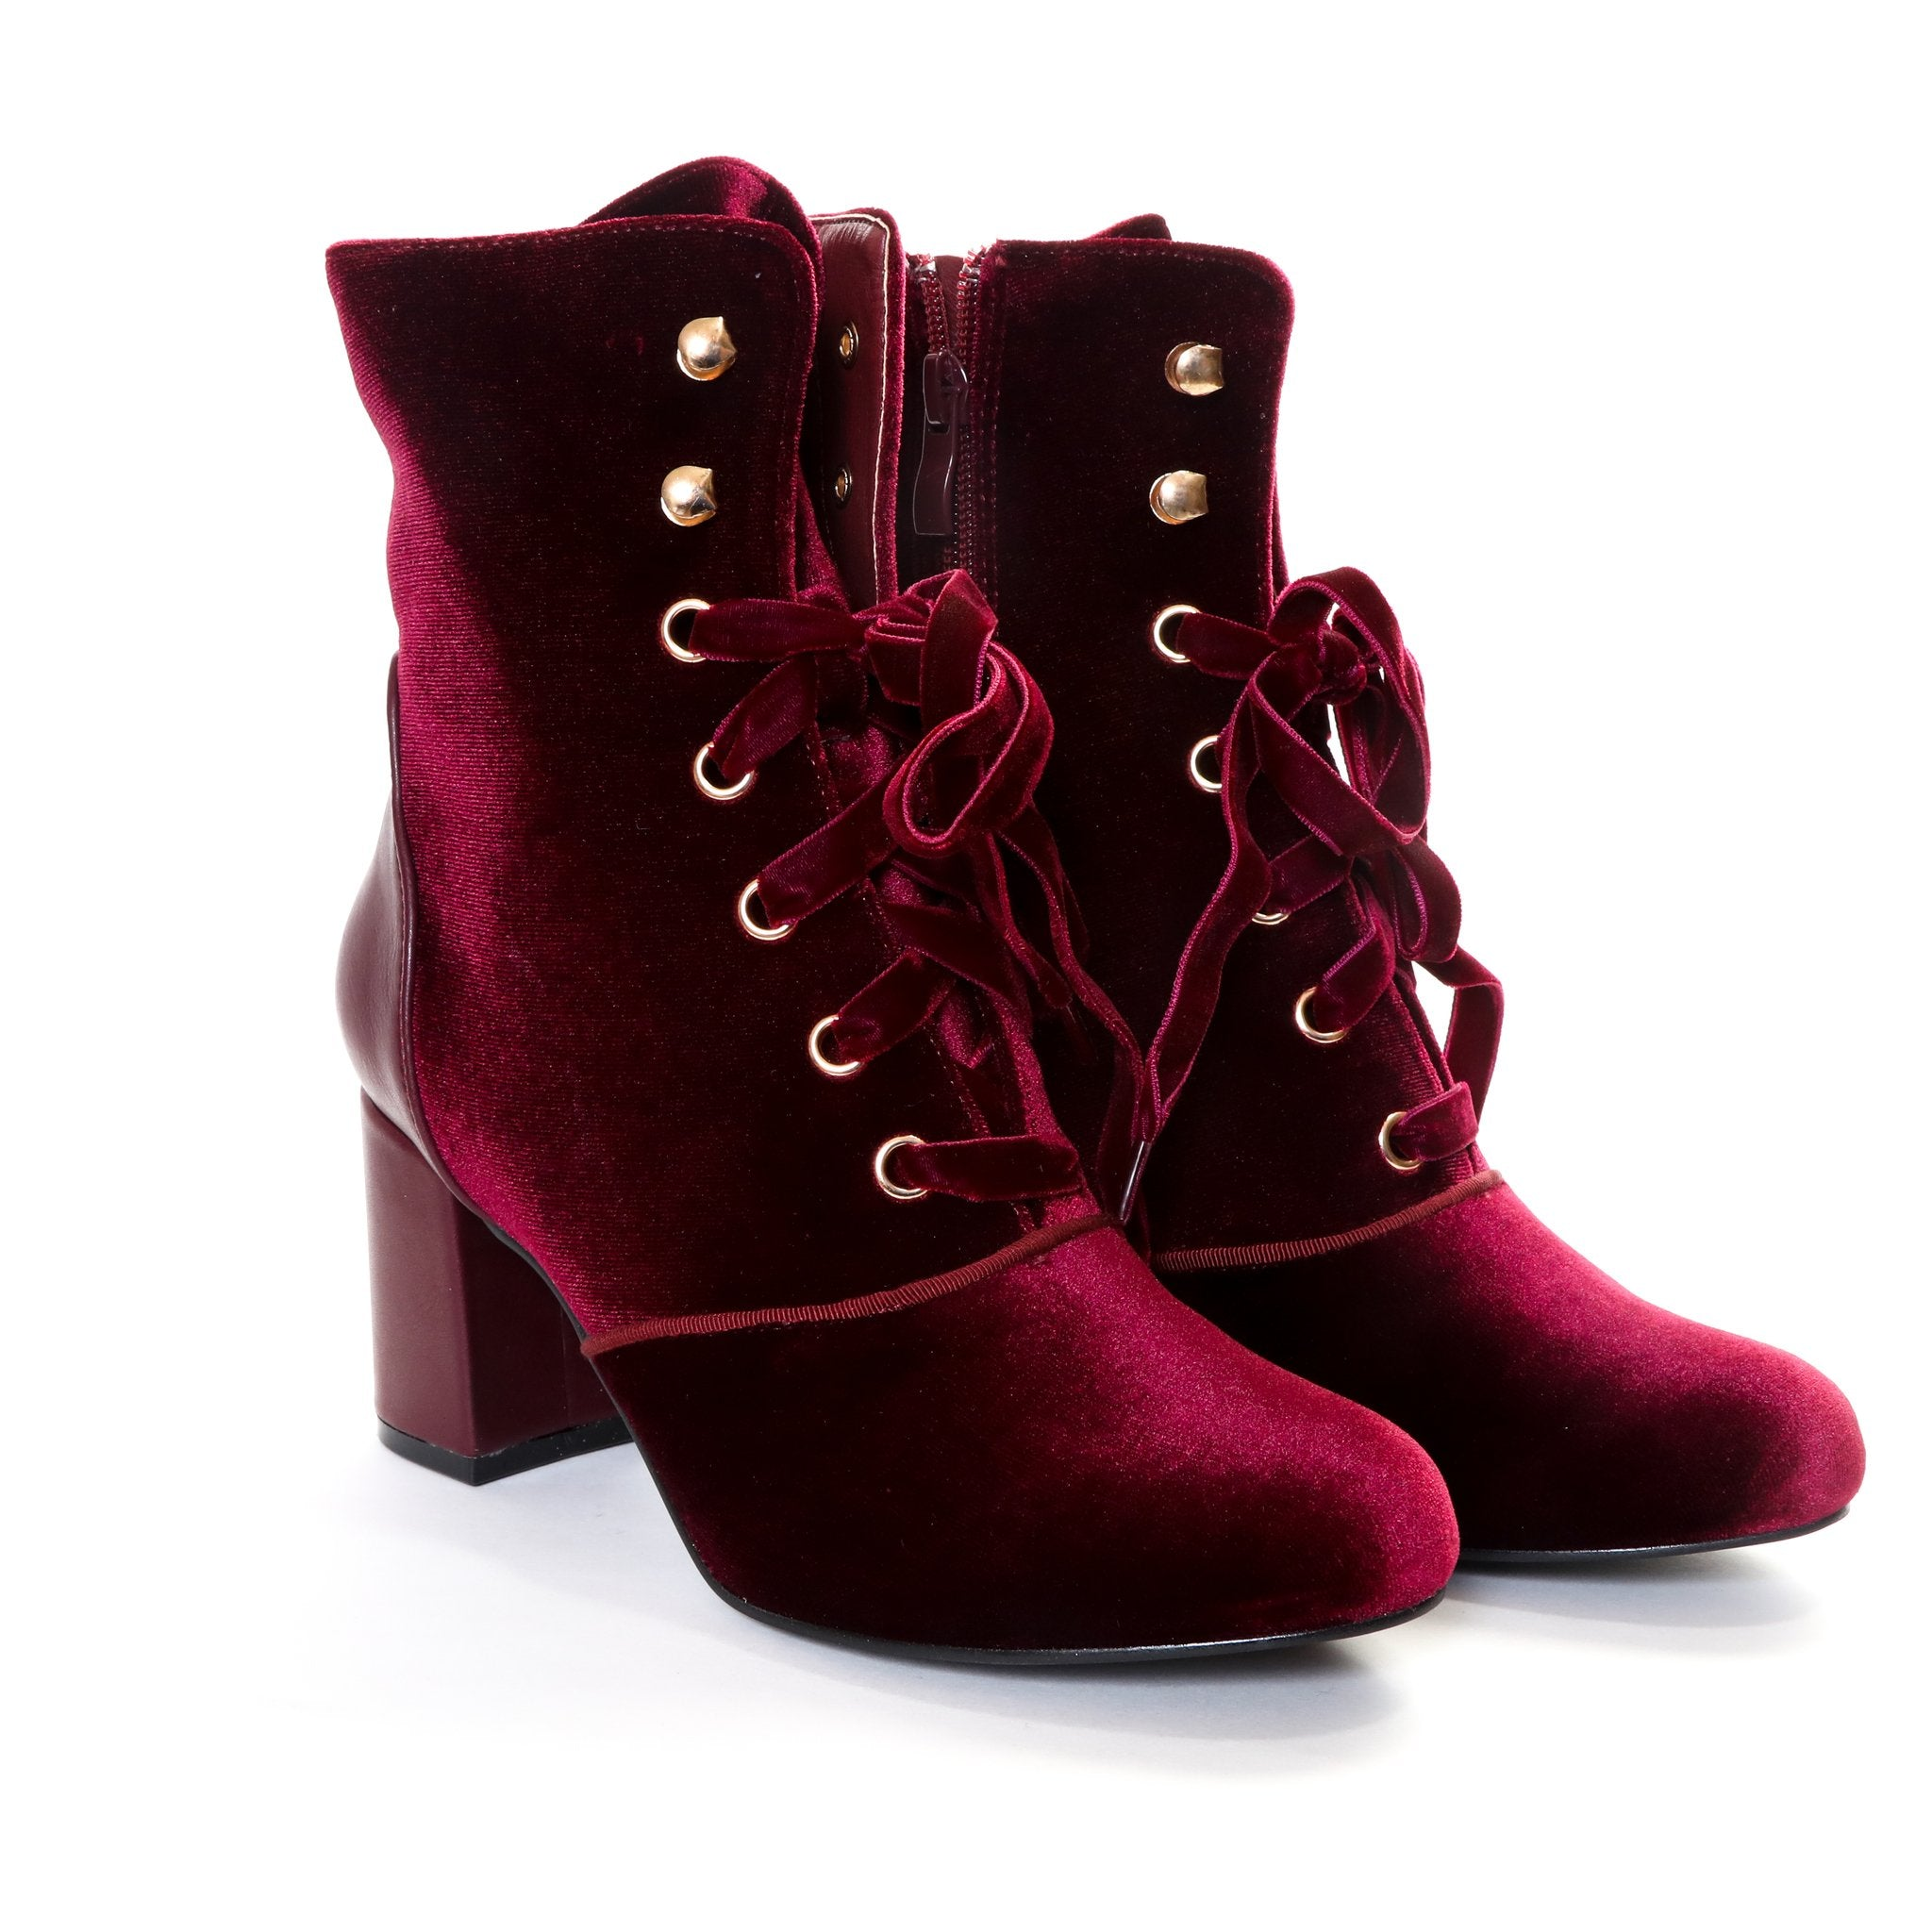 Claudia by Dolce Nome | Lace Up Heel Boots in Wine (pair view)